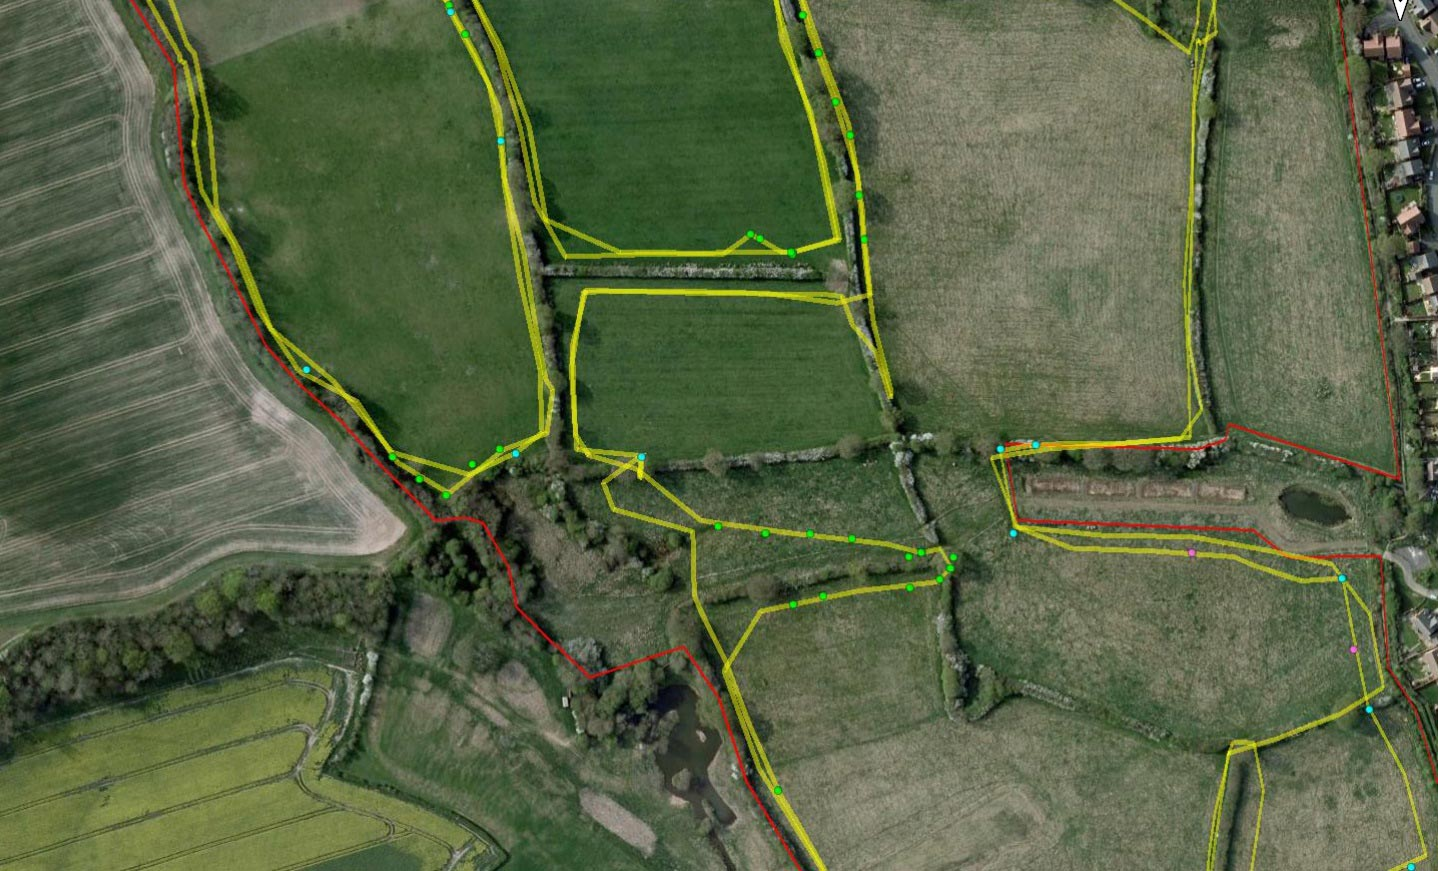 RammSanderson can help you appraise low yield land to advise how it can be utilised to fulfil biodiversity net gain requirements in a way that will meet planning approval.